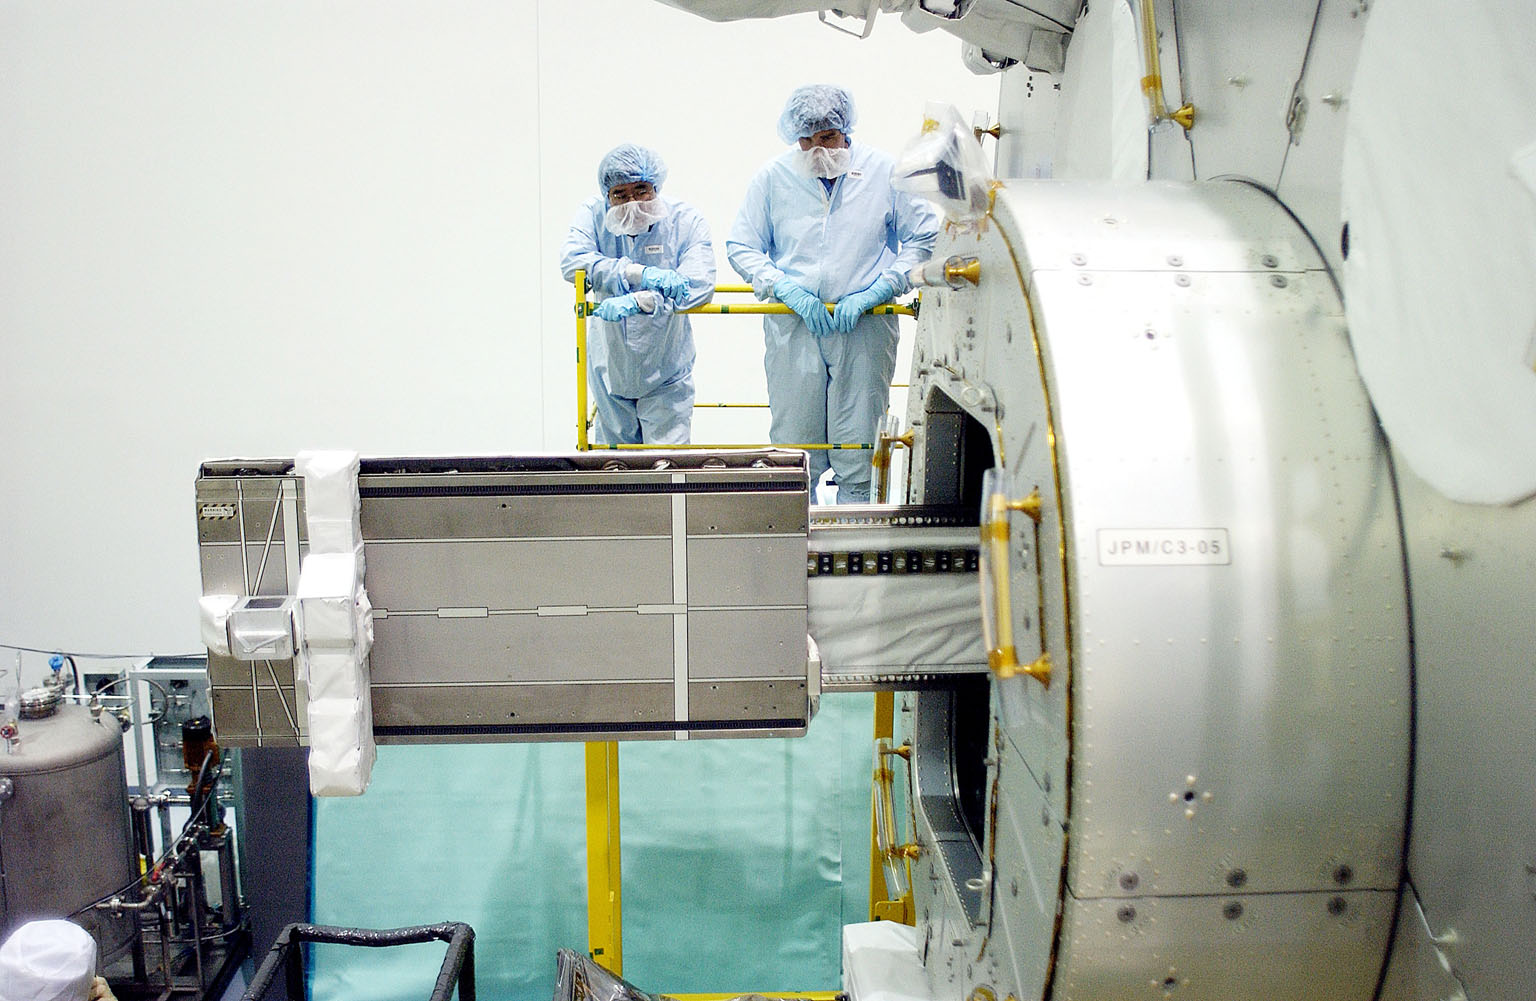 KENNEDY SPACE CENTER, FLA. - In the Space Station Processing Facility, Japanese astronaut Koichi Wakata (top left) and technicians watch as a tray is extended from inside the Pressurized Module, or PM, part of the Japanese Experiment Module (JEM). The PM provides a shirt-sleeve environment in which astronauts on the International Space Station can conduct microgravity experiments. There are a total of 23 racks, including 10 experiment racks, inside the PM providing a power supply, communications, air conditioning, hardware cooling, water control and experiment support functions.